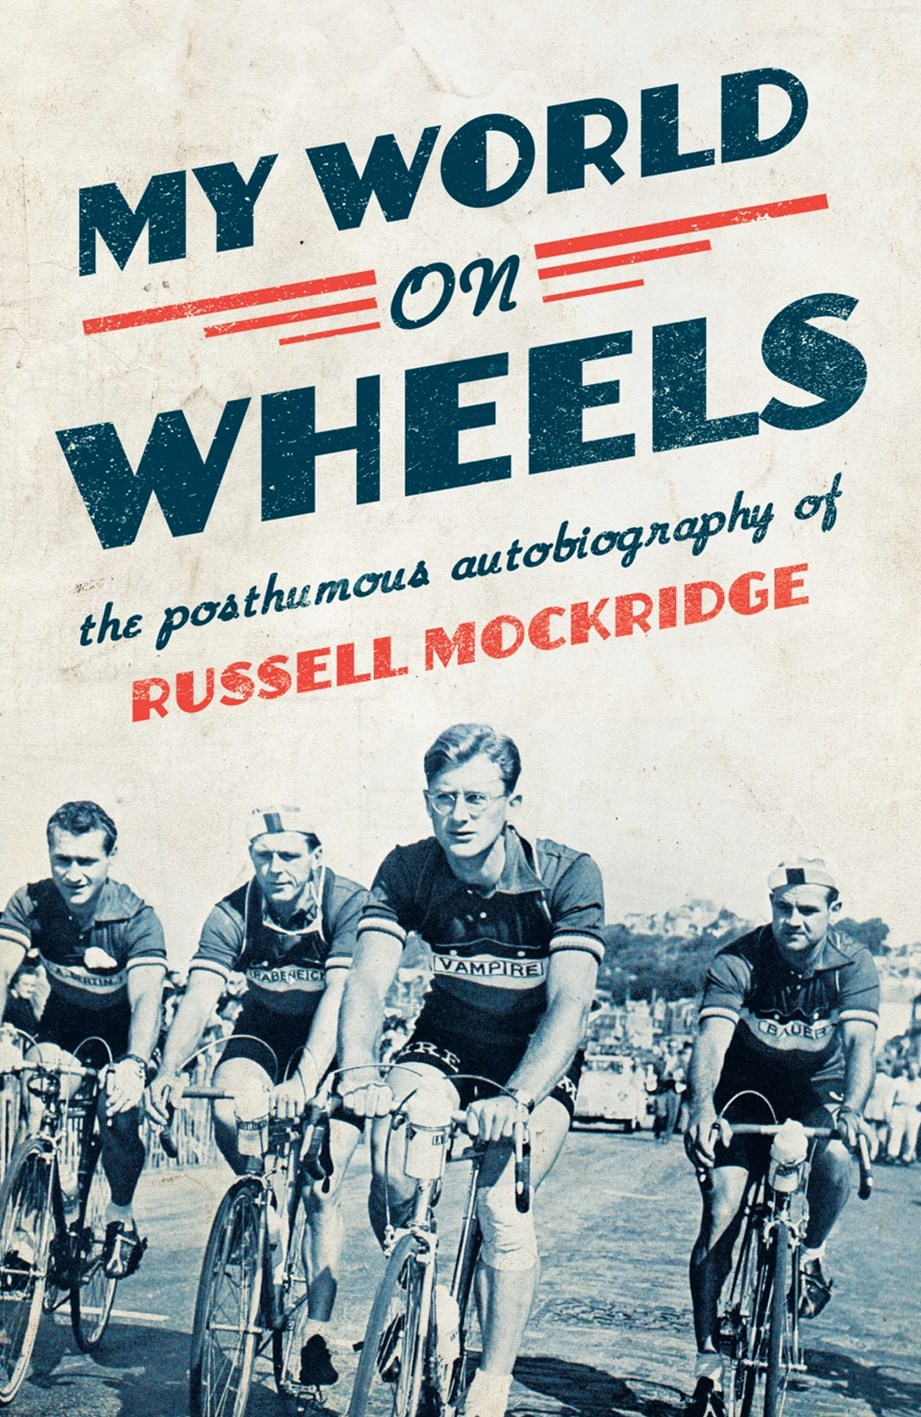 My World on Wheels: the posthumous autobiography of Russell Mockridge